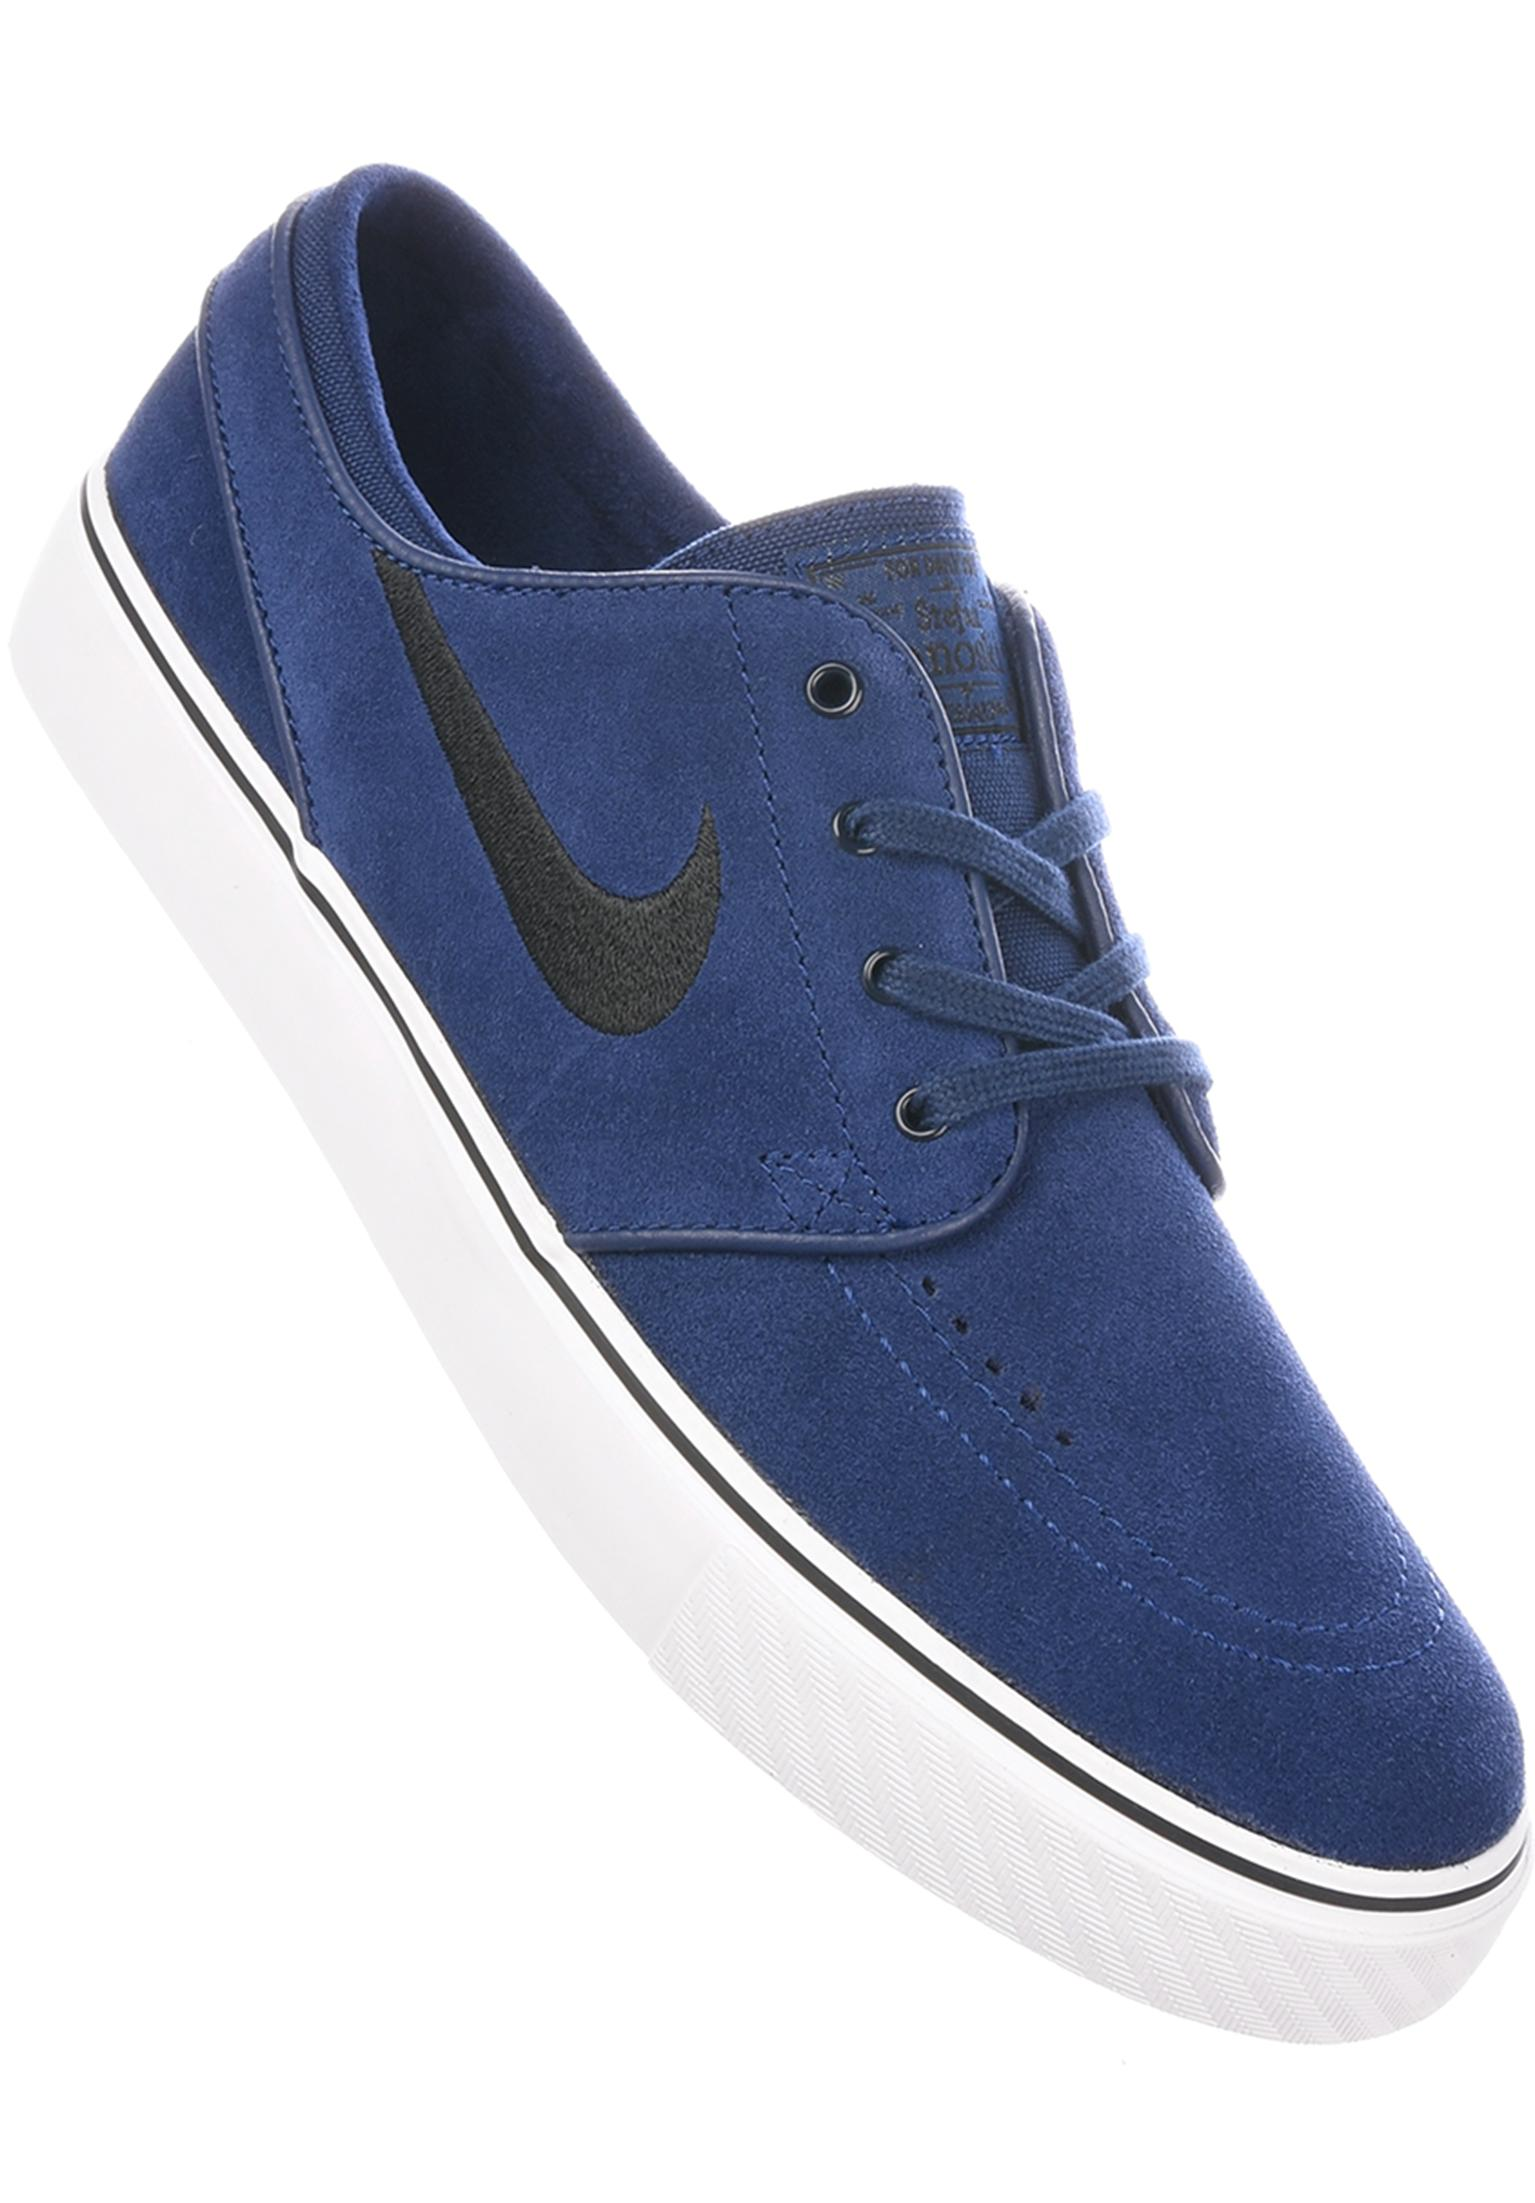 online store 0477d a1424 Zoom Stefan Janoski Nike SB All Shoes in binaryblue-black for Men | Titus